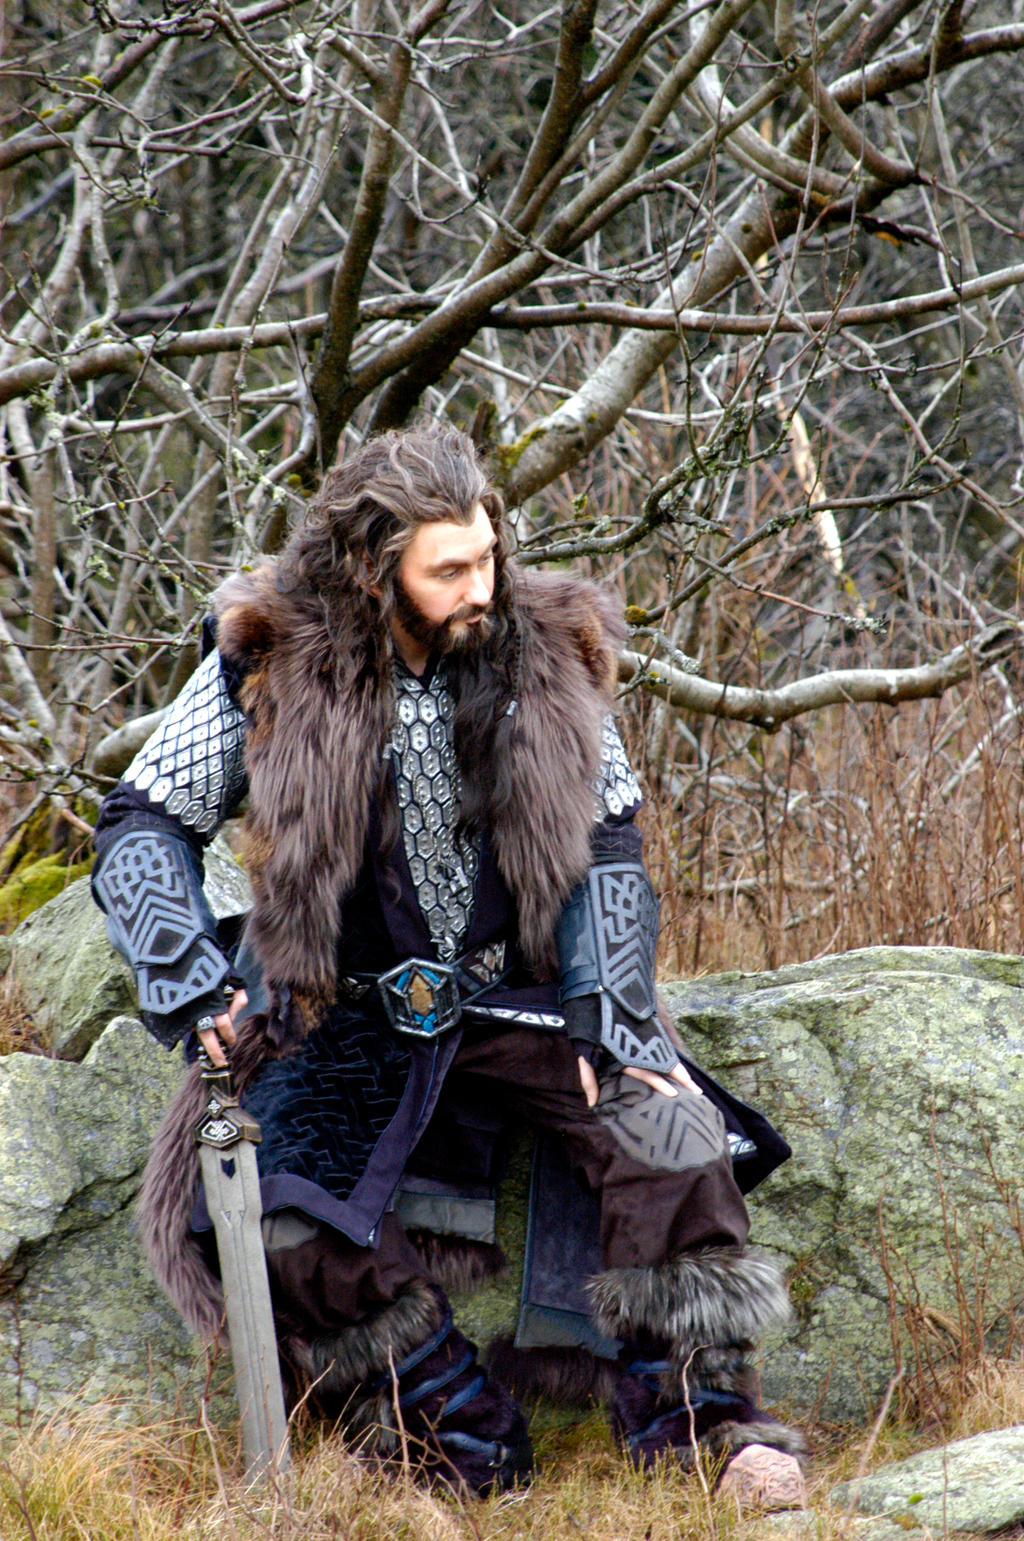 Thorin - Forgotten King by Feuerregen